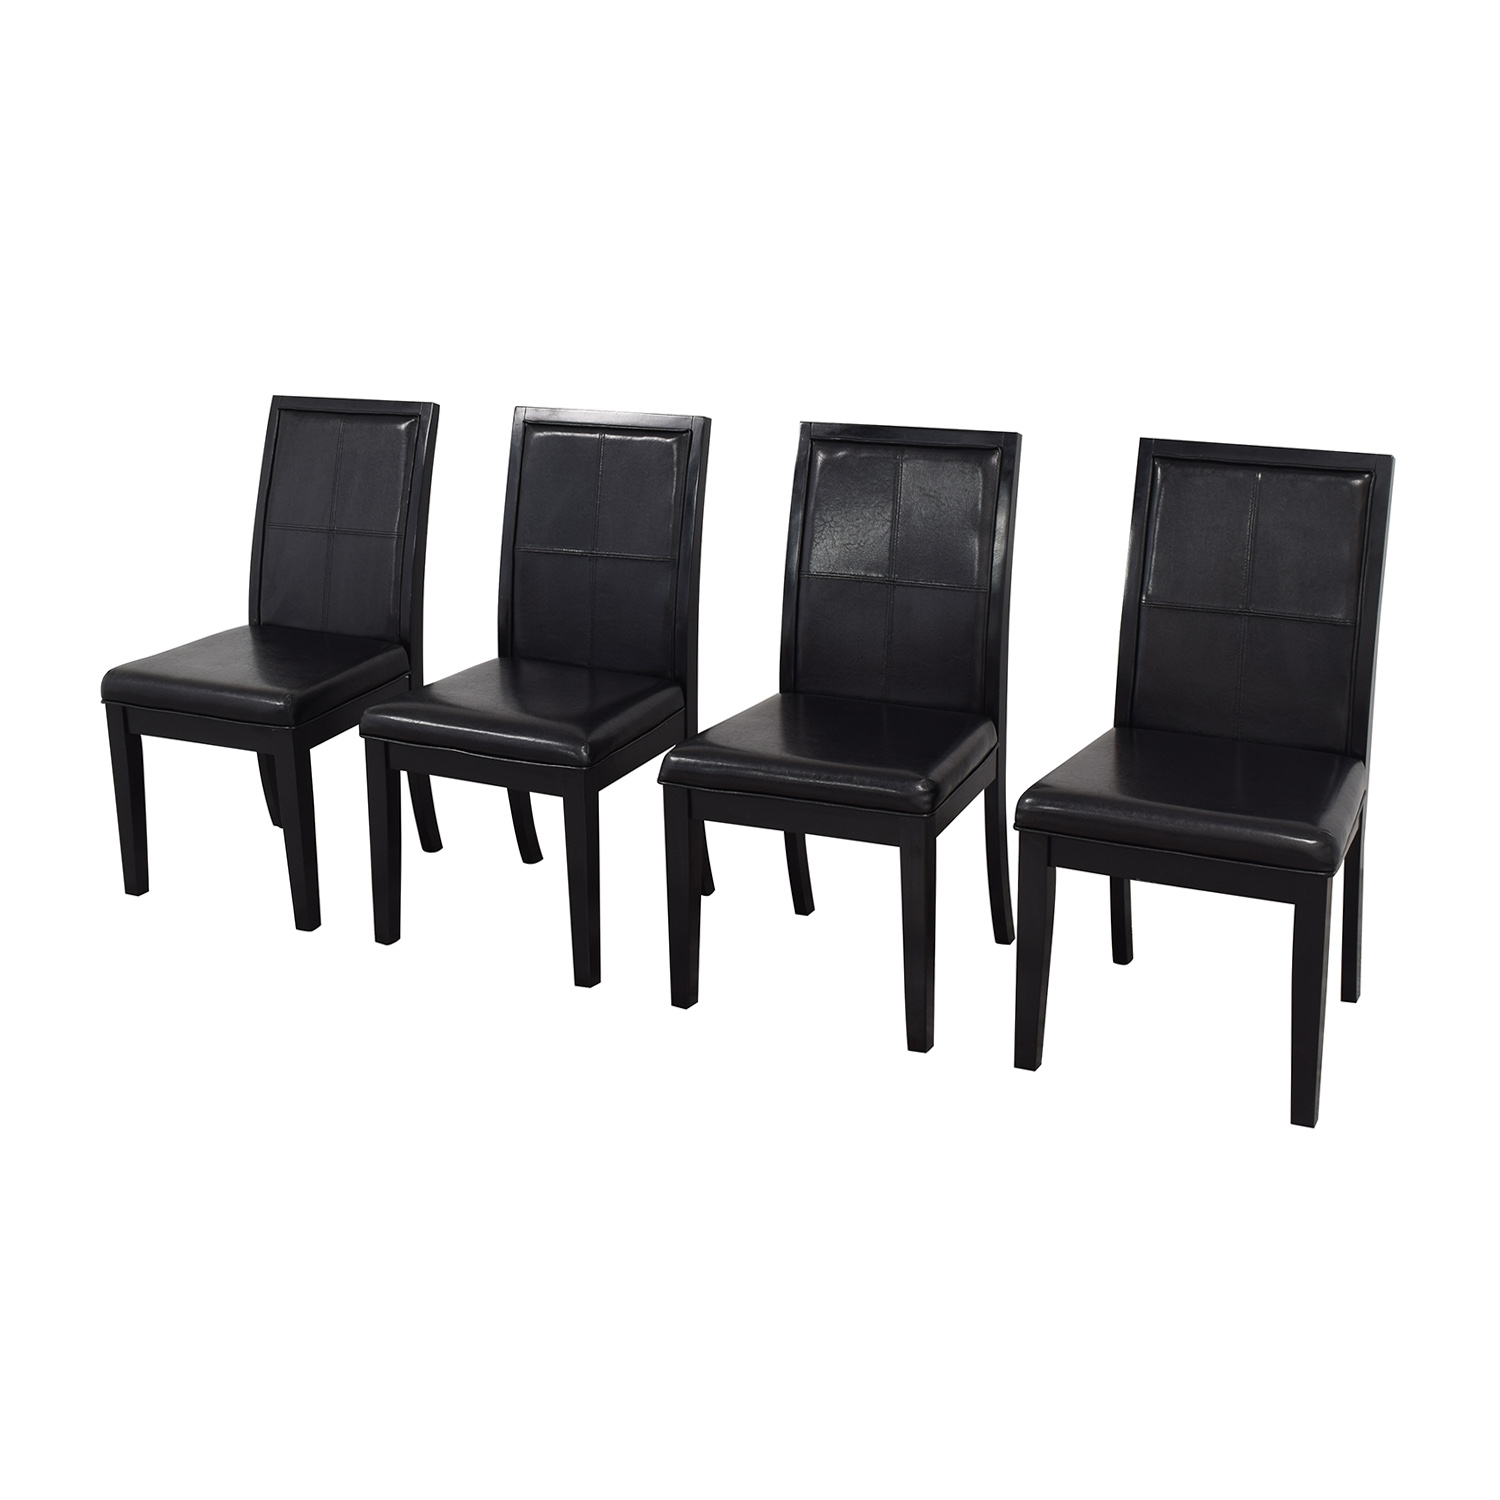 Calmart International Calmart International Dining Chairs used